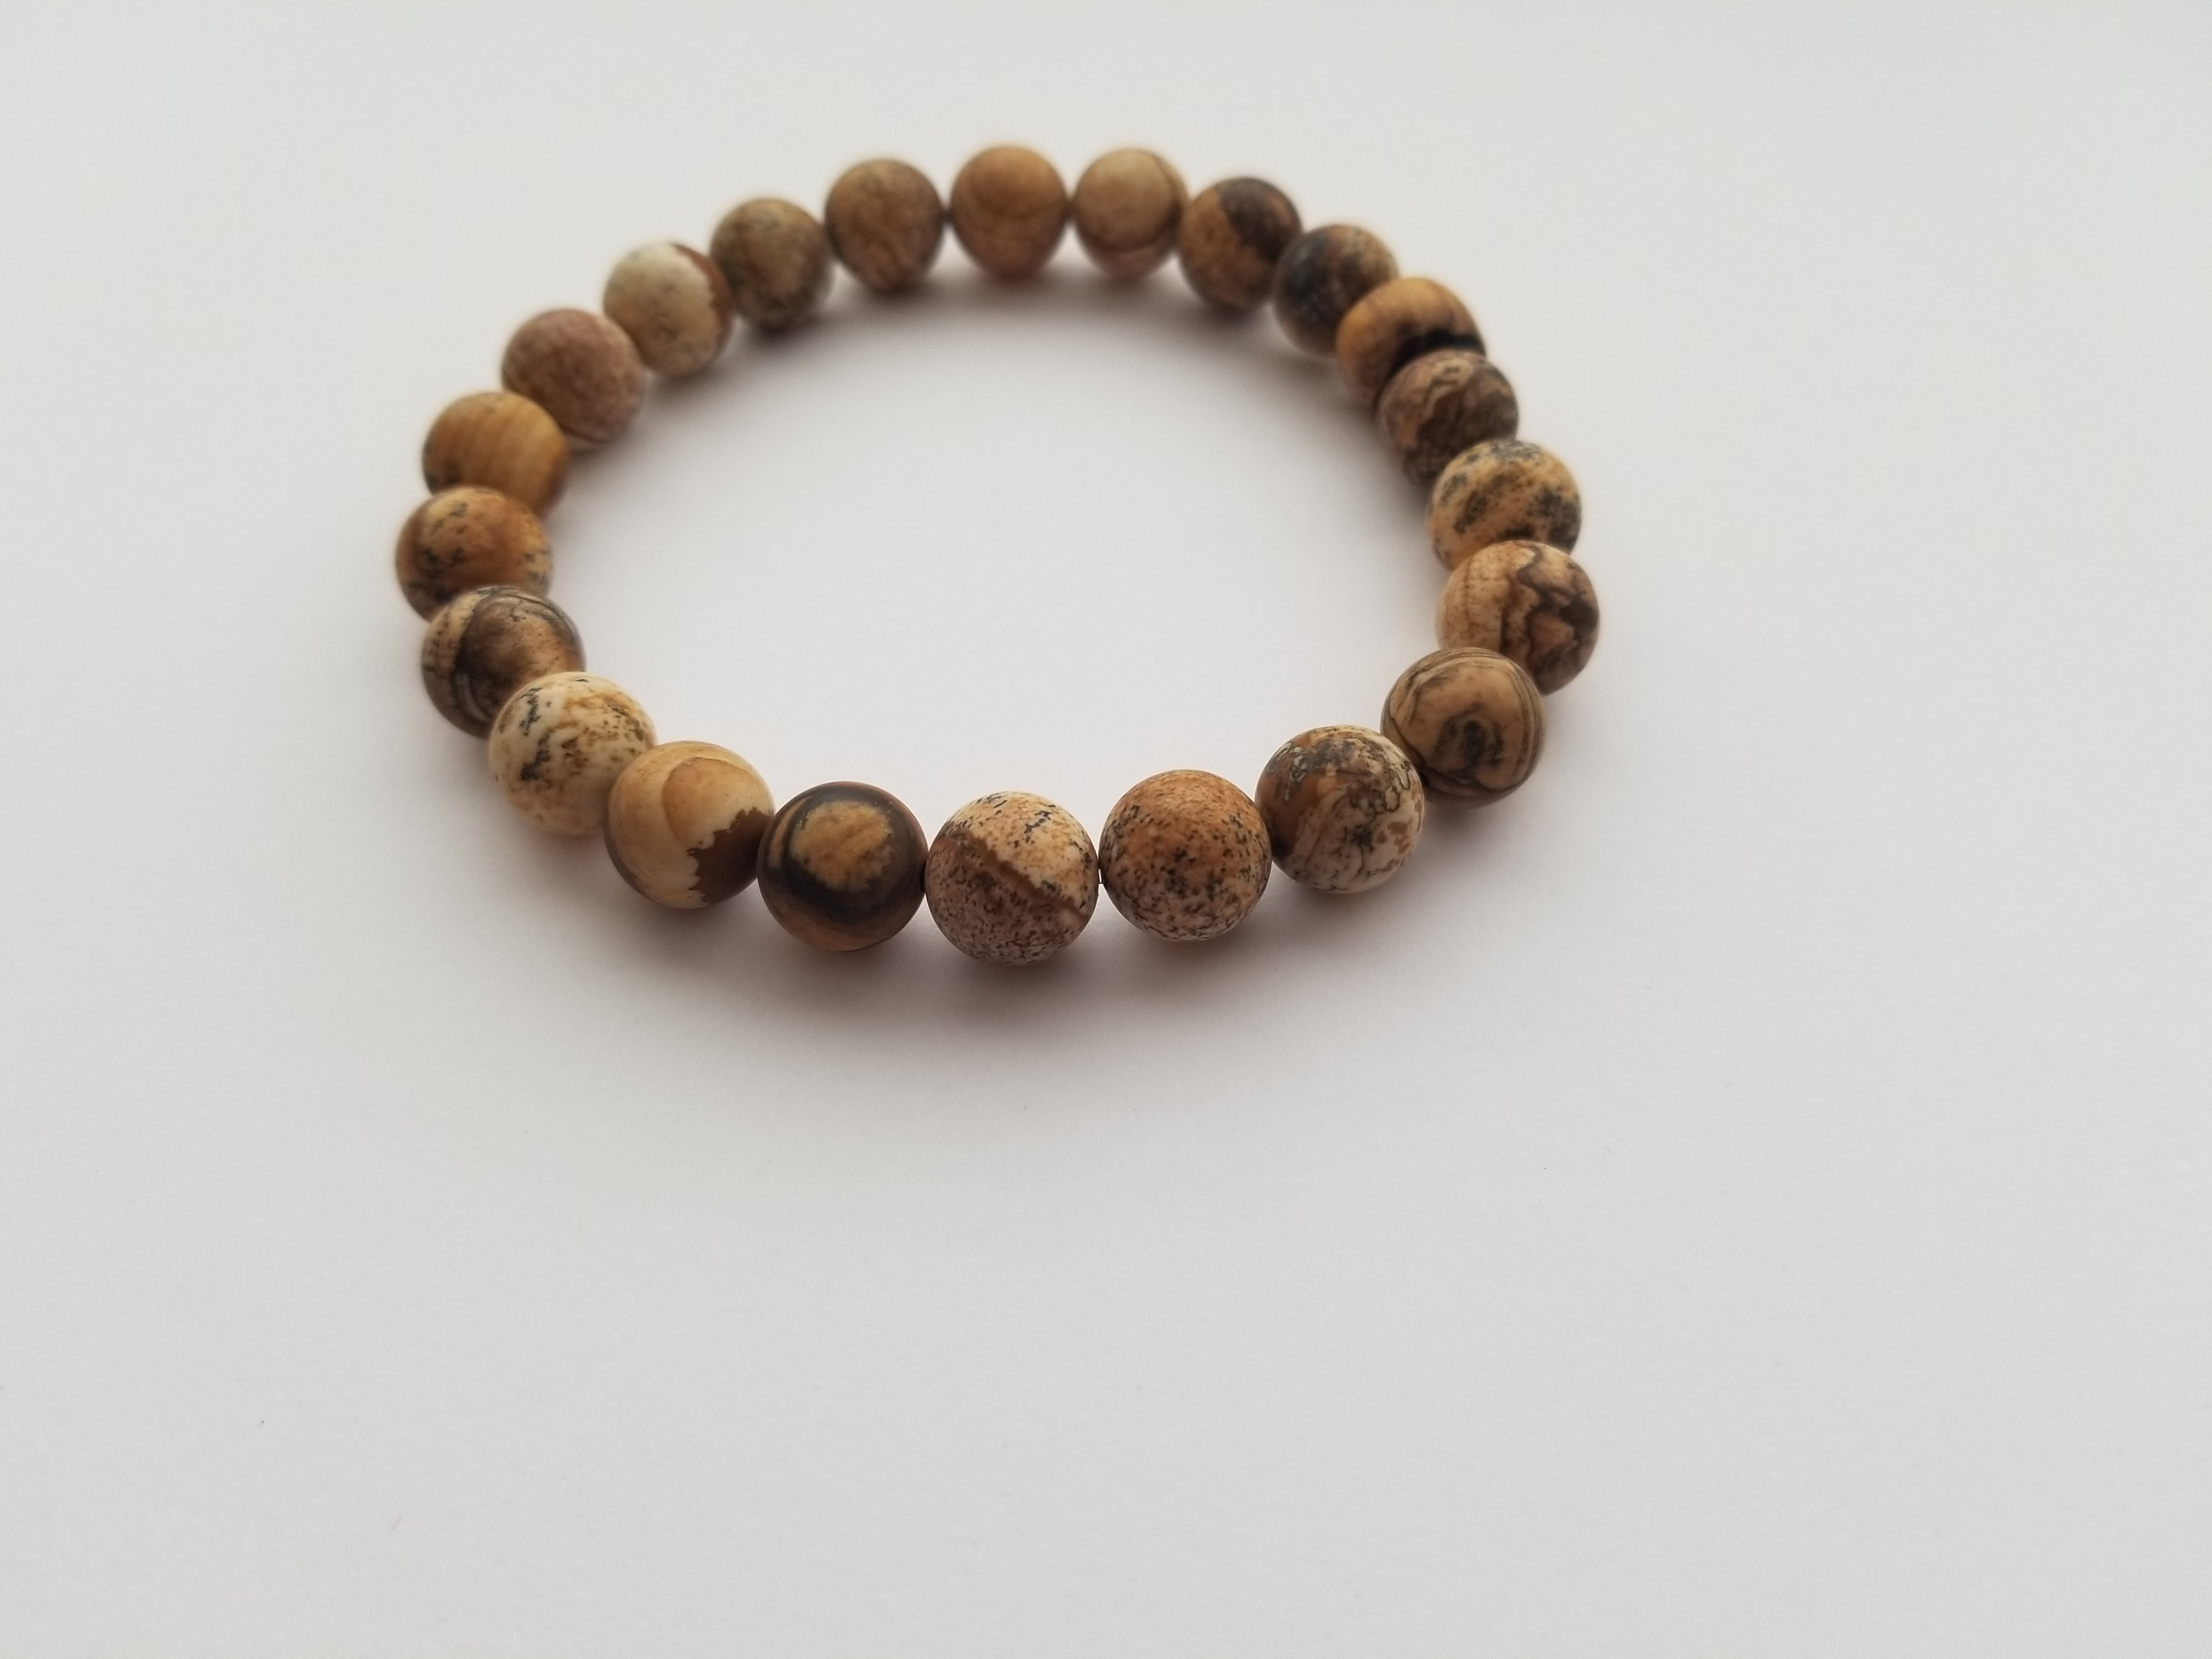 10mm Picture Jasper and Wood Bead Bracelet